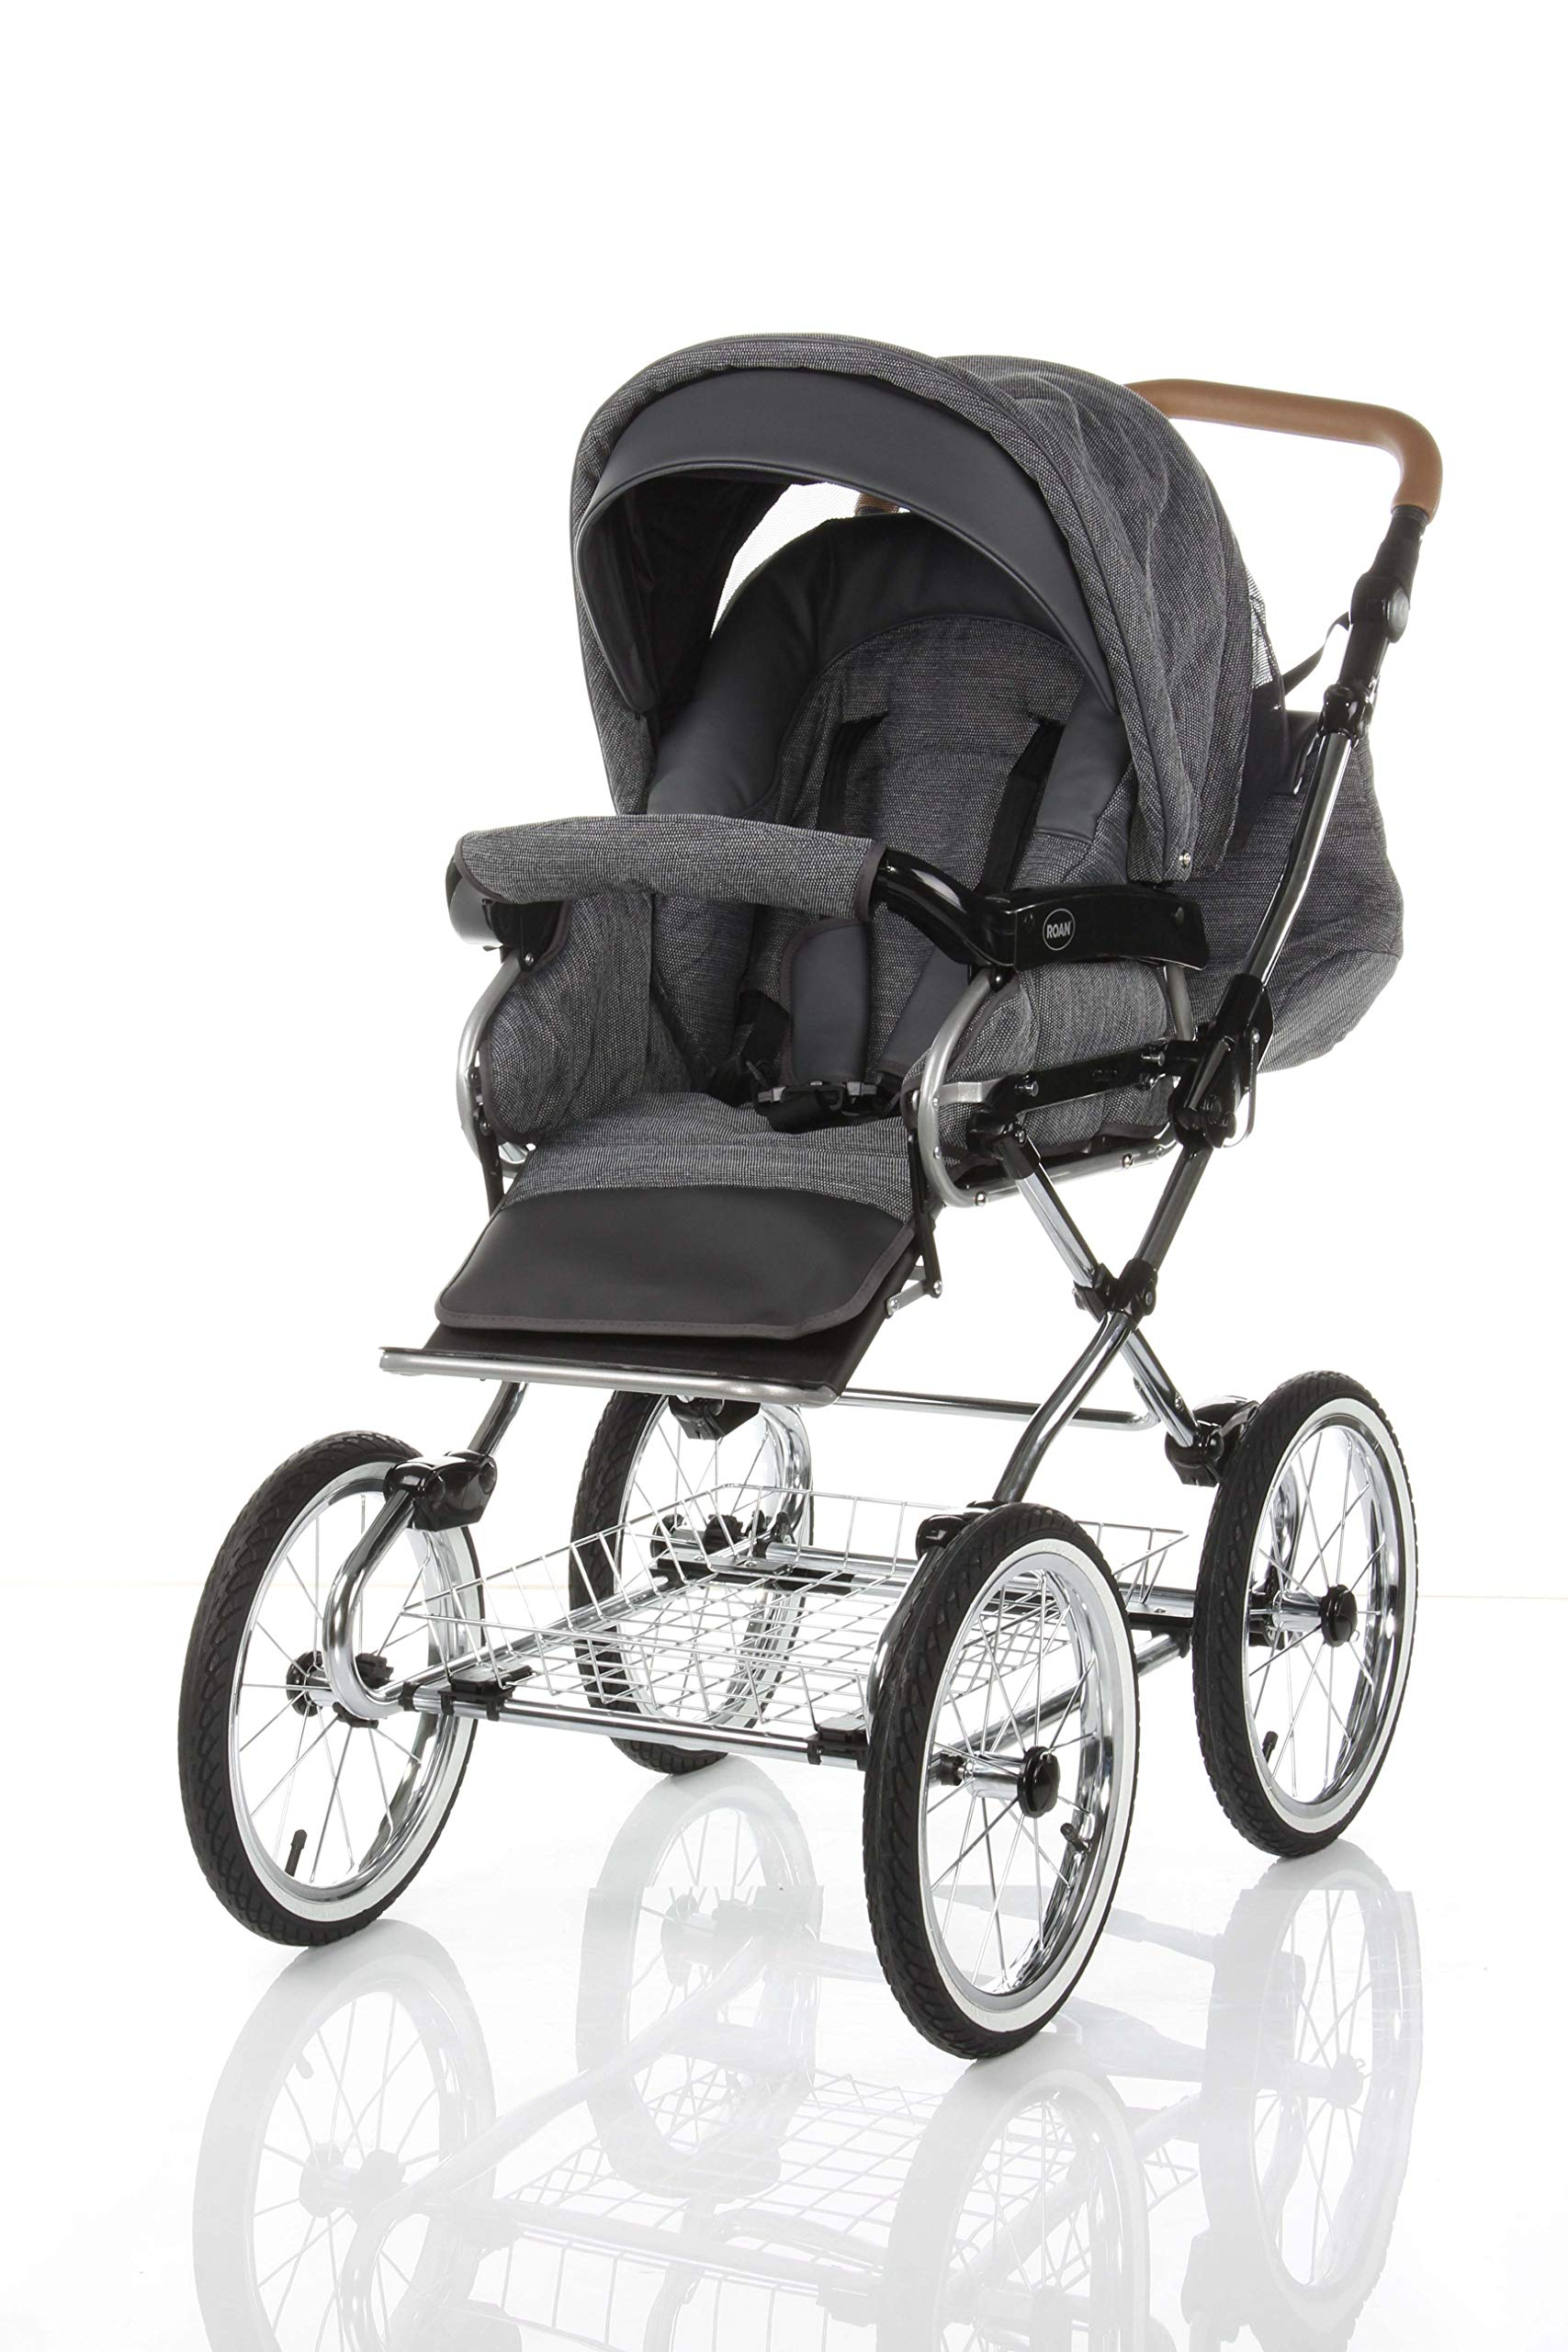 Children's Pram Buggy Stroller Combination Car seat Classic Retro Baby Carrier ROAN Emma (E-81 Dark Grey Melange-Grey Leather, 2IN1) JUNAMA Frame / wheels Sturdy and lightweight aluminum frame construction with folding function 1-click system for easy assembly and disassembly Practical carrying handle for easy storage of the folded frame Wheels for inflating (14 inch) removable wheels Brake system with central brake Height-adjustable push handle - 10-fold matching shopping basket Dimensions folded with wheels: 86 x 60 x 40 cm folded without wheels: 76 x 60 x 26 cm Total height of the stroller to hood top: 106 cm Height of the tub from the ground: 60 cm Wheelbase External dimensions: 80x 58 cm Variable height of the push handle: 77- 119 cm Weight of the frame incl. Wheels and carrying bag 15 kg Carrycot Length and width of carrycot outside: 88 x 42 cm Carrying bag length and width inside: 76 x 35 cm Sturdy plastic tub with comfortable mattress and side protection Ventilation slots on the plastic tub The baby car seat 0-13 kg Maxi-Cosi in black incl. Adapter 5